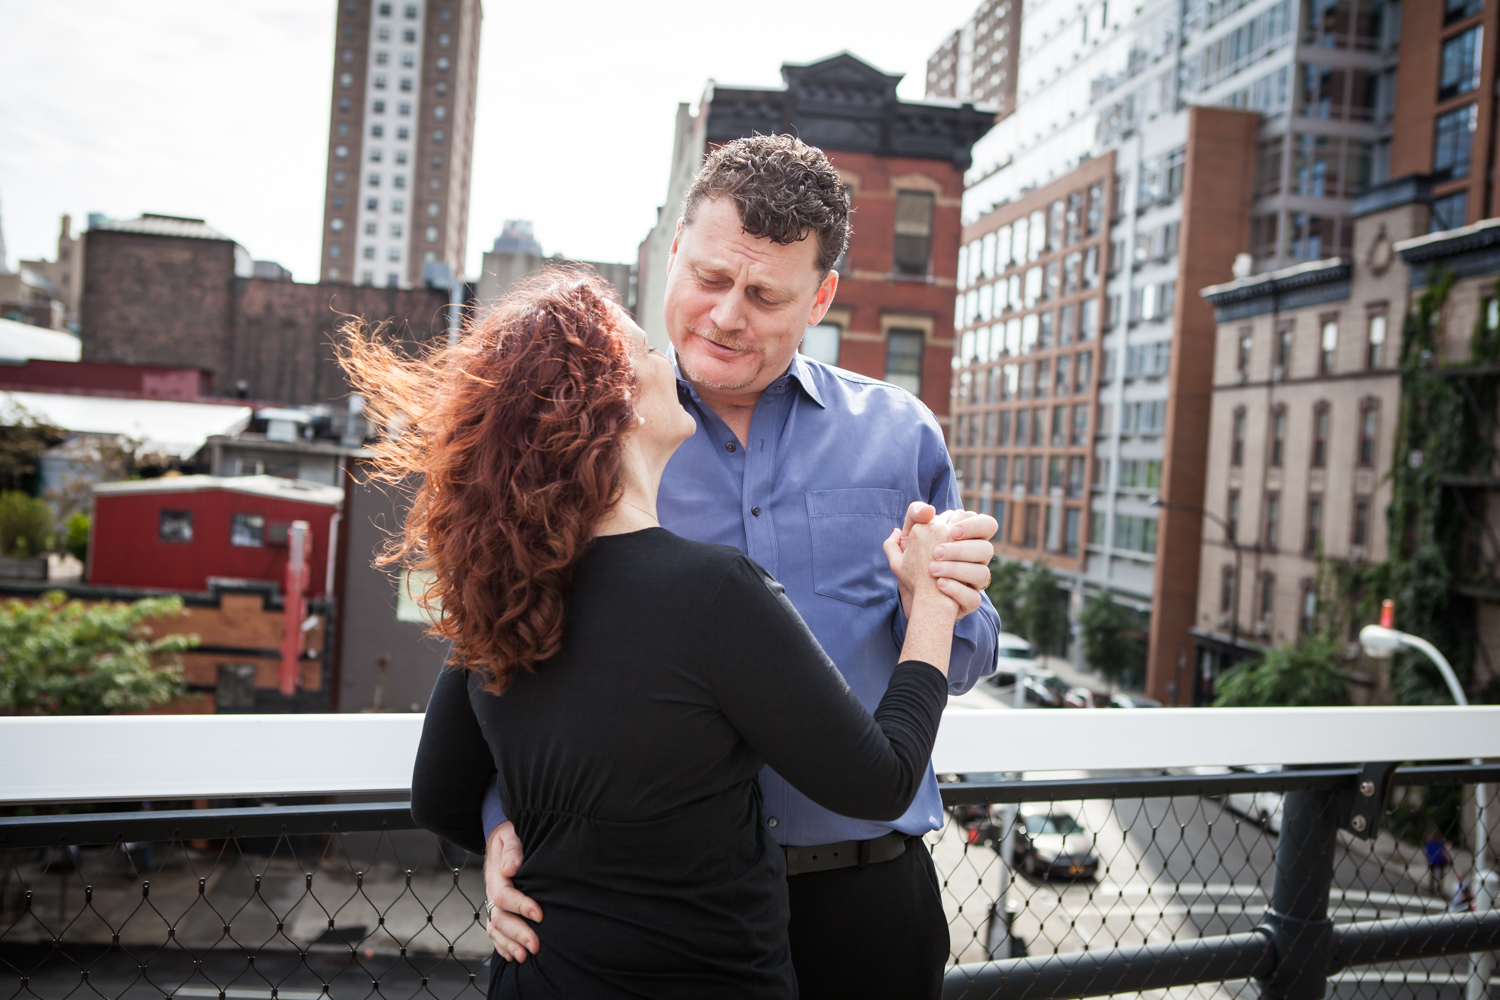 Couple dancing together on the High Line observation deck with NYC street in background